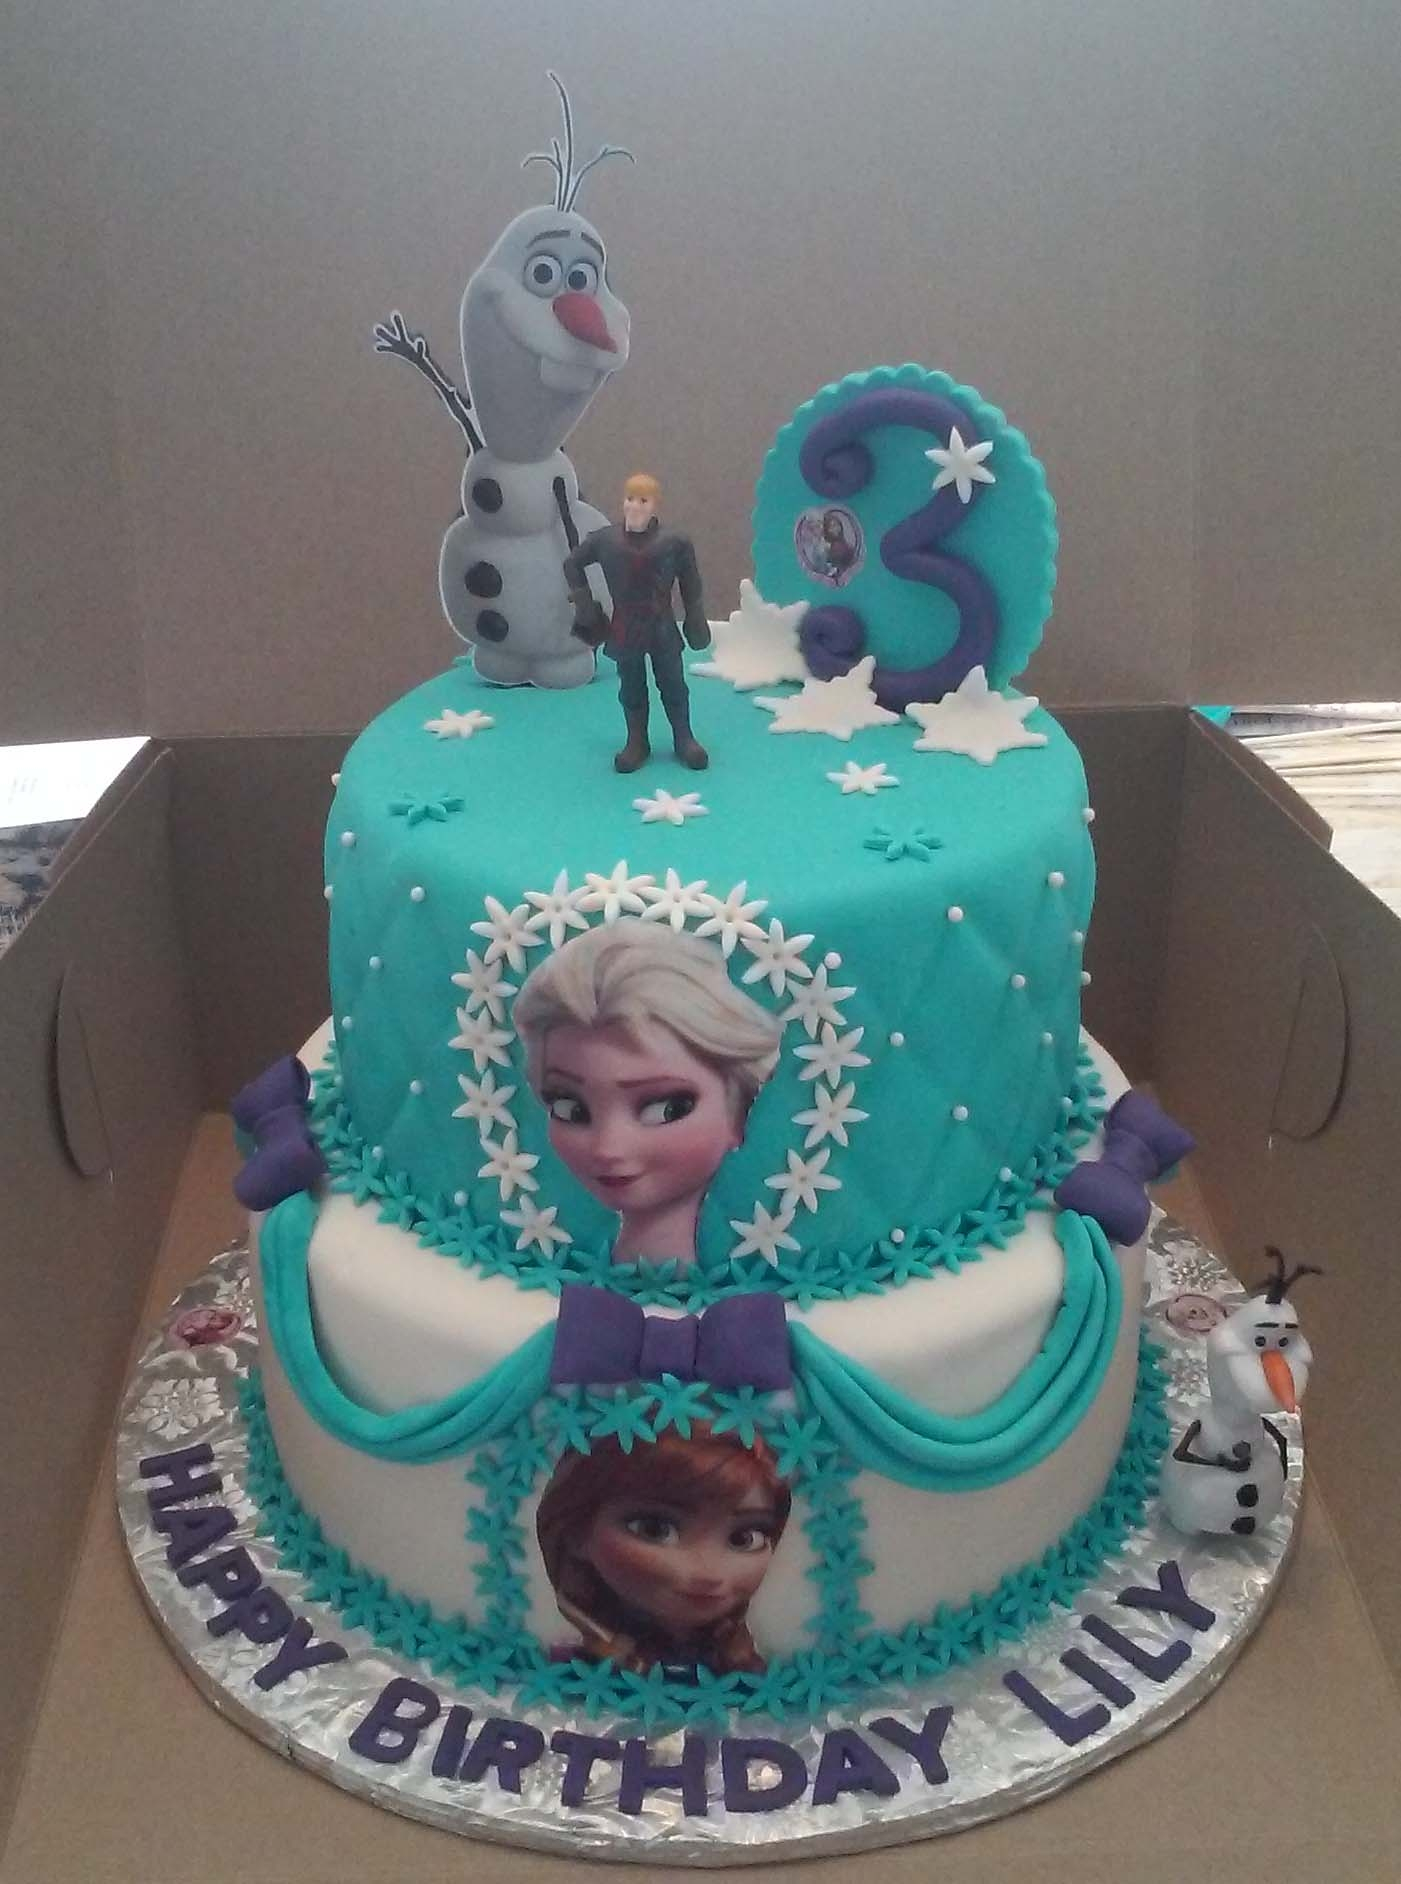 Disney Frozen Birthday Cakes 2 Tier Elsa And Anna Frozen Themed ...